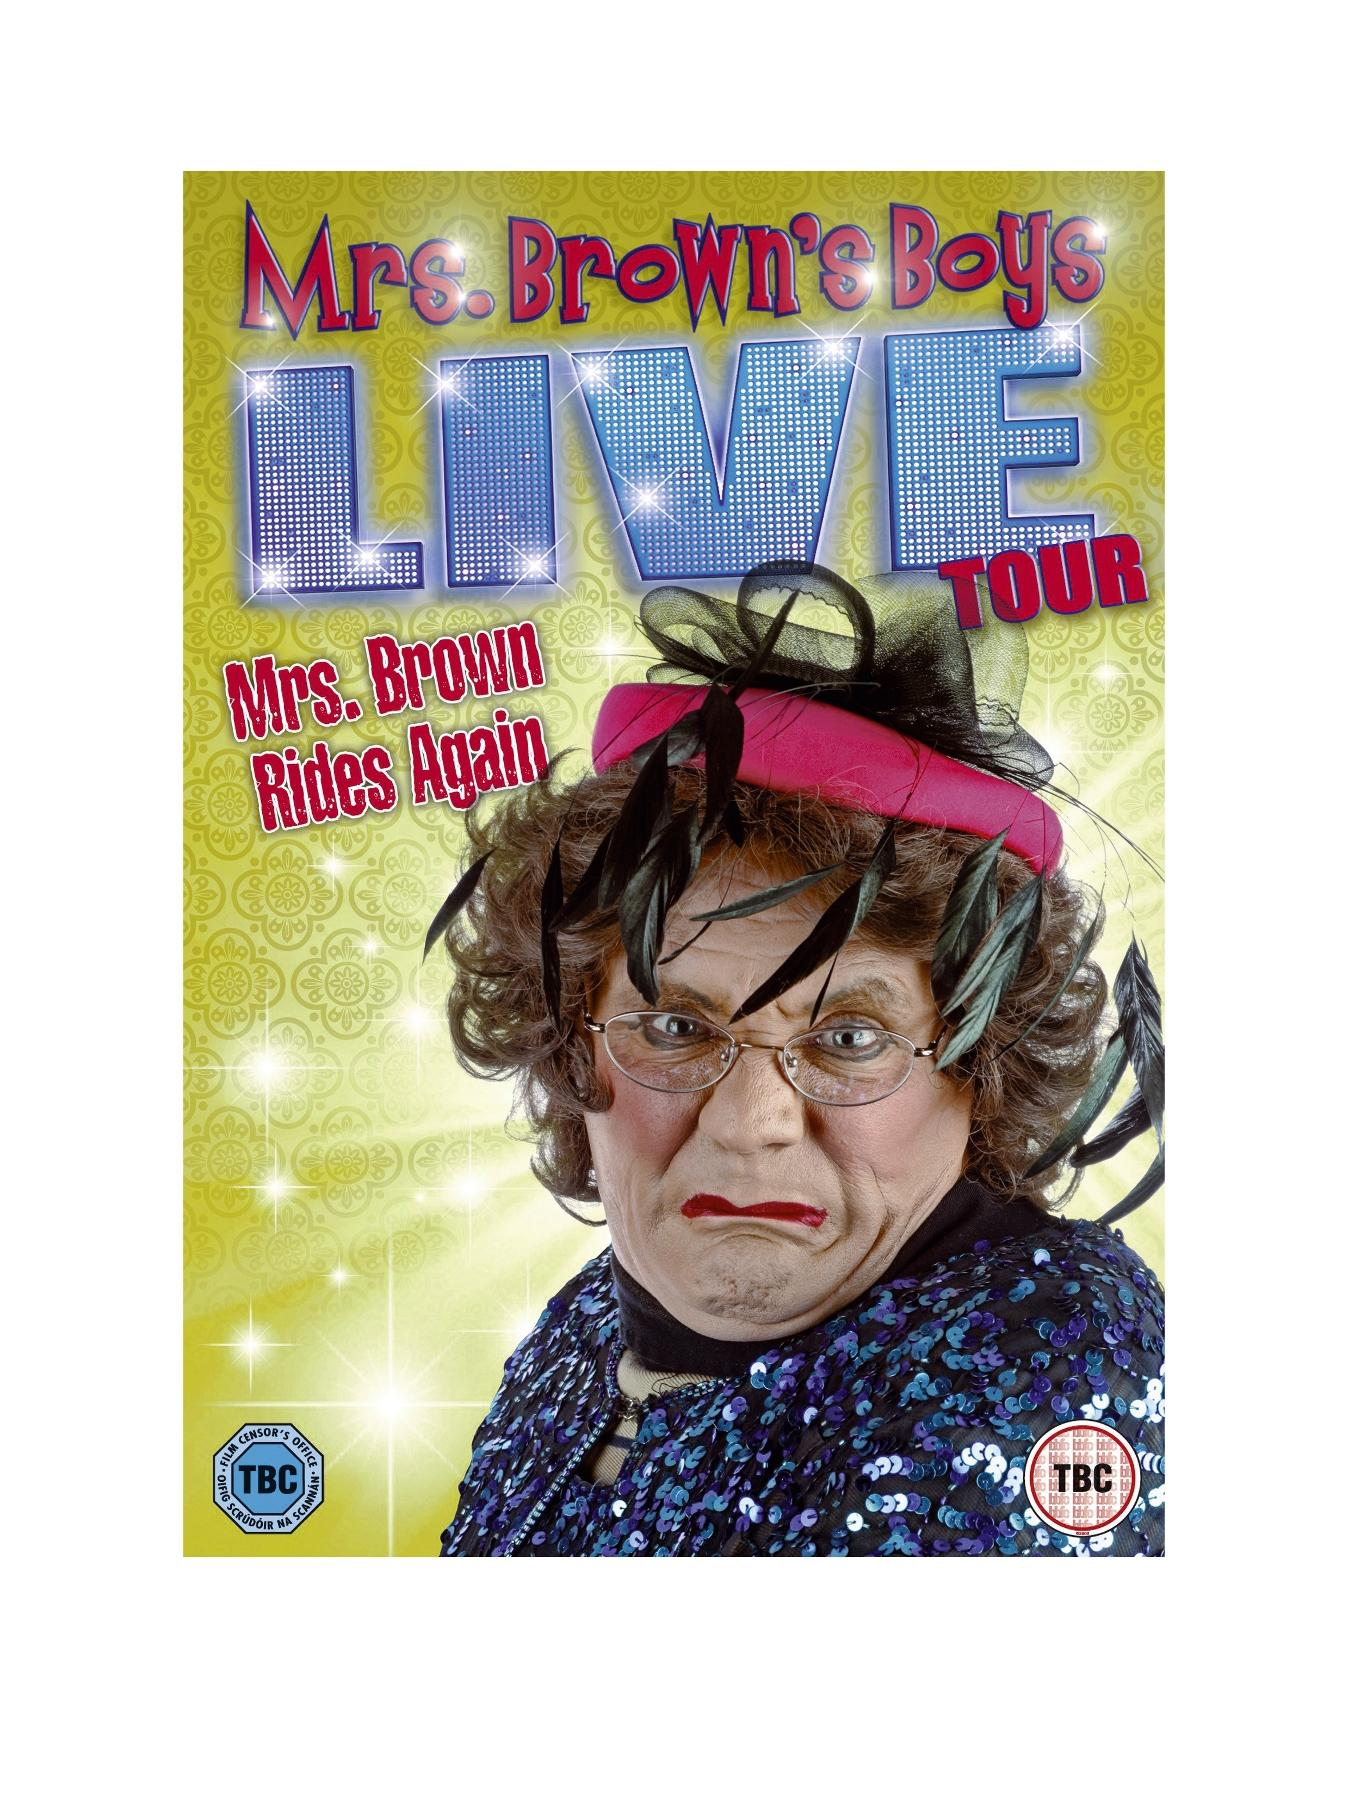 Mrs. Brown's Boys Live Tour: Mrs. Brown Rides Again DVD